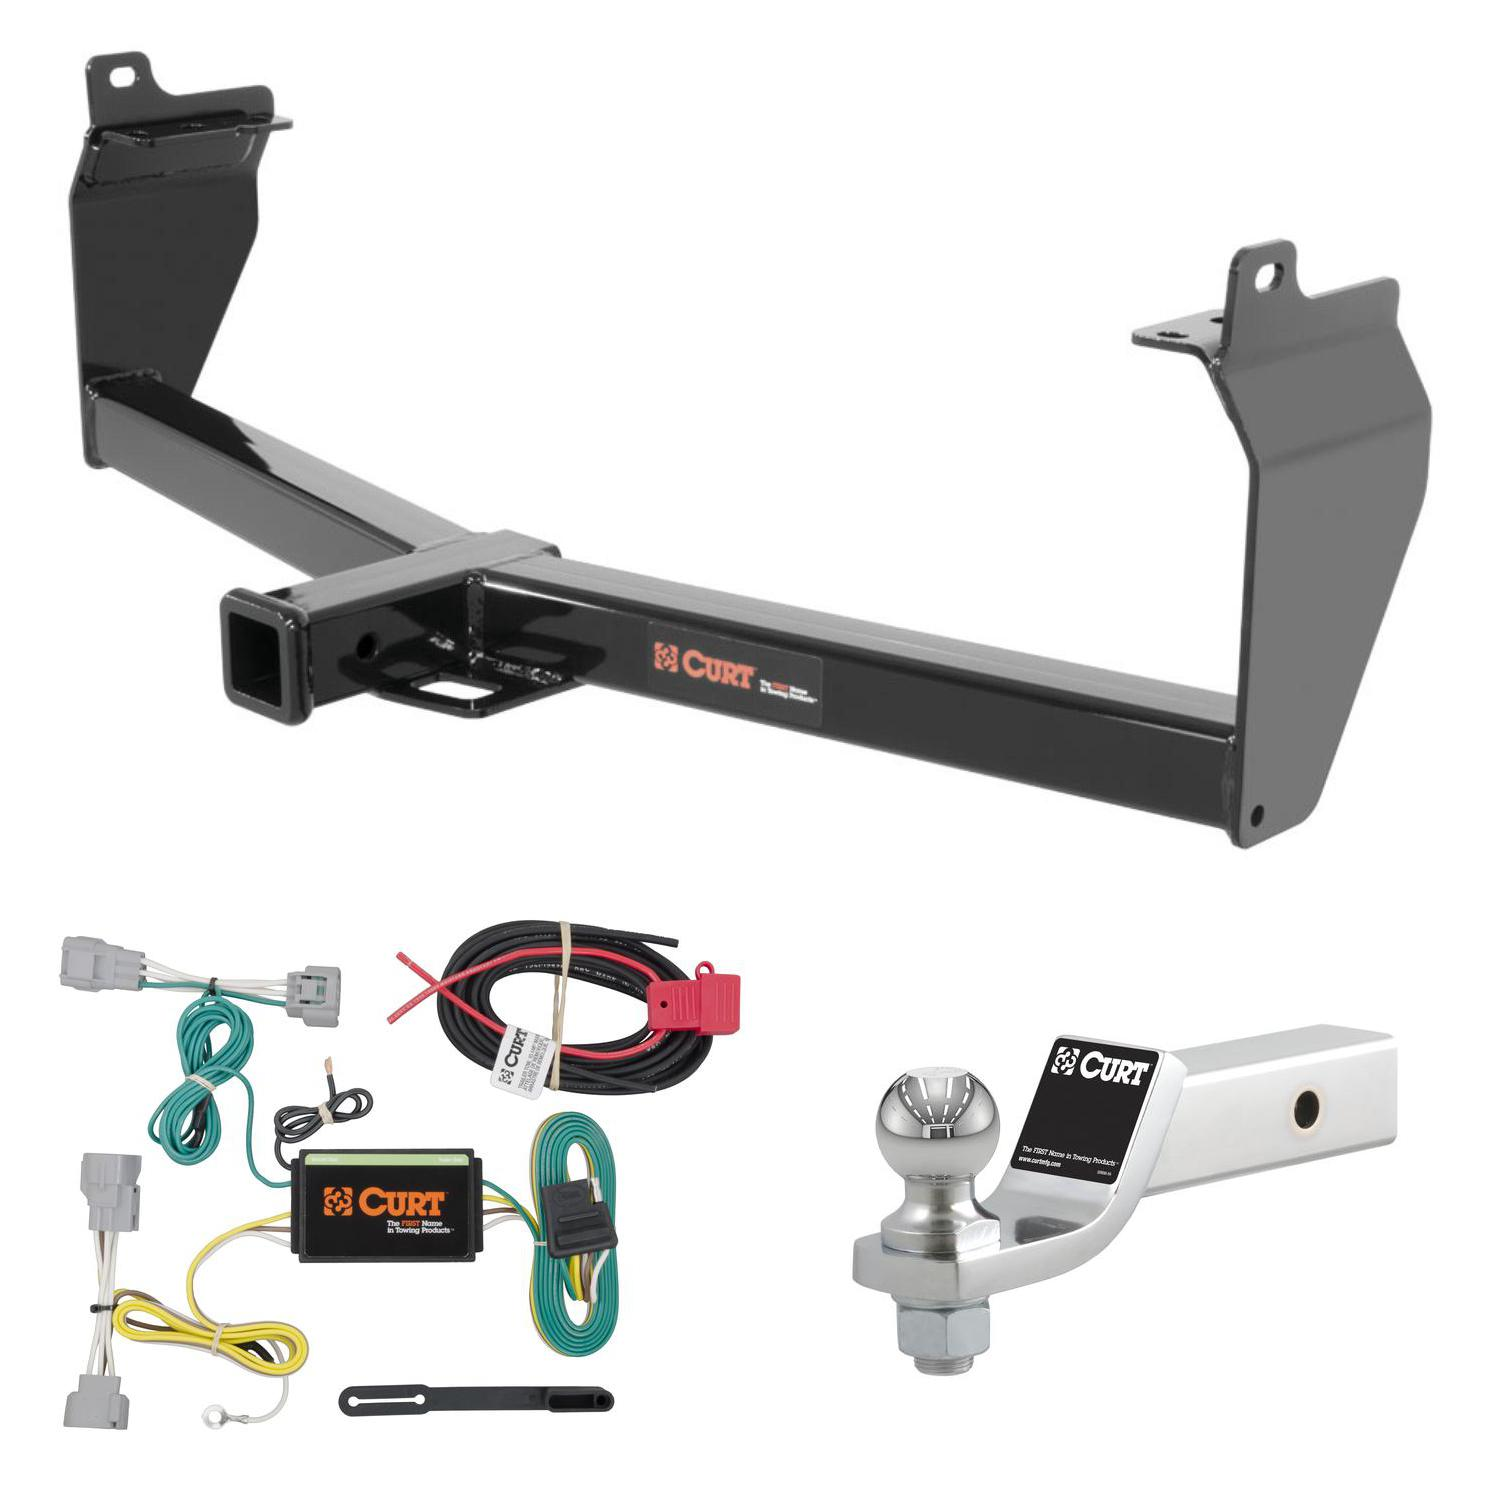 curt trailer hitch wiring 2 ball mount w 2 drop for 14 16 jeep rh ebay com curt trailer hitch wiring diagram curt trailer hitch wiring installation